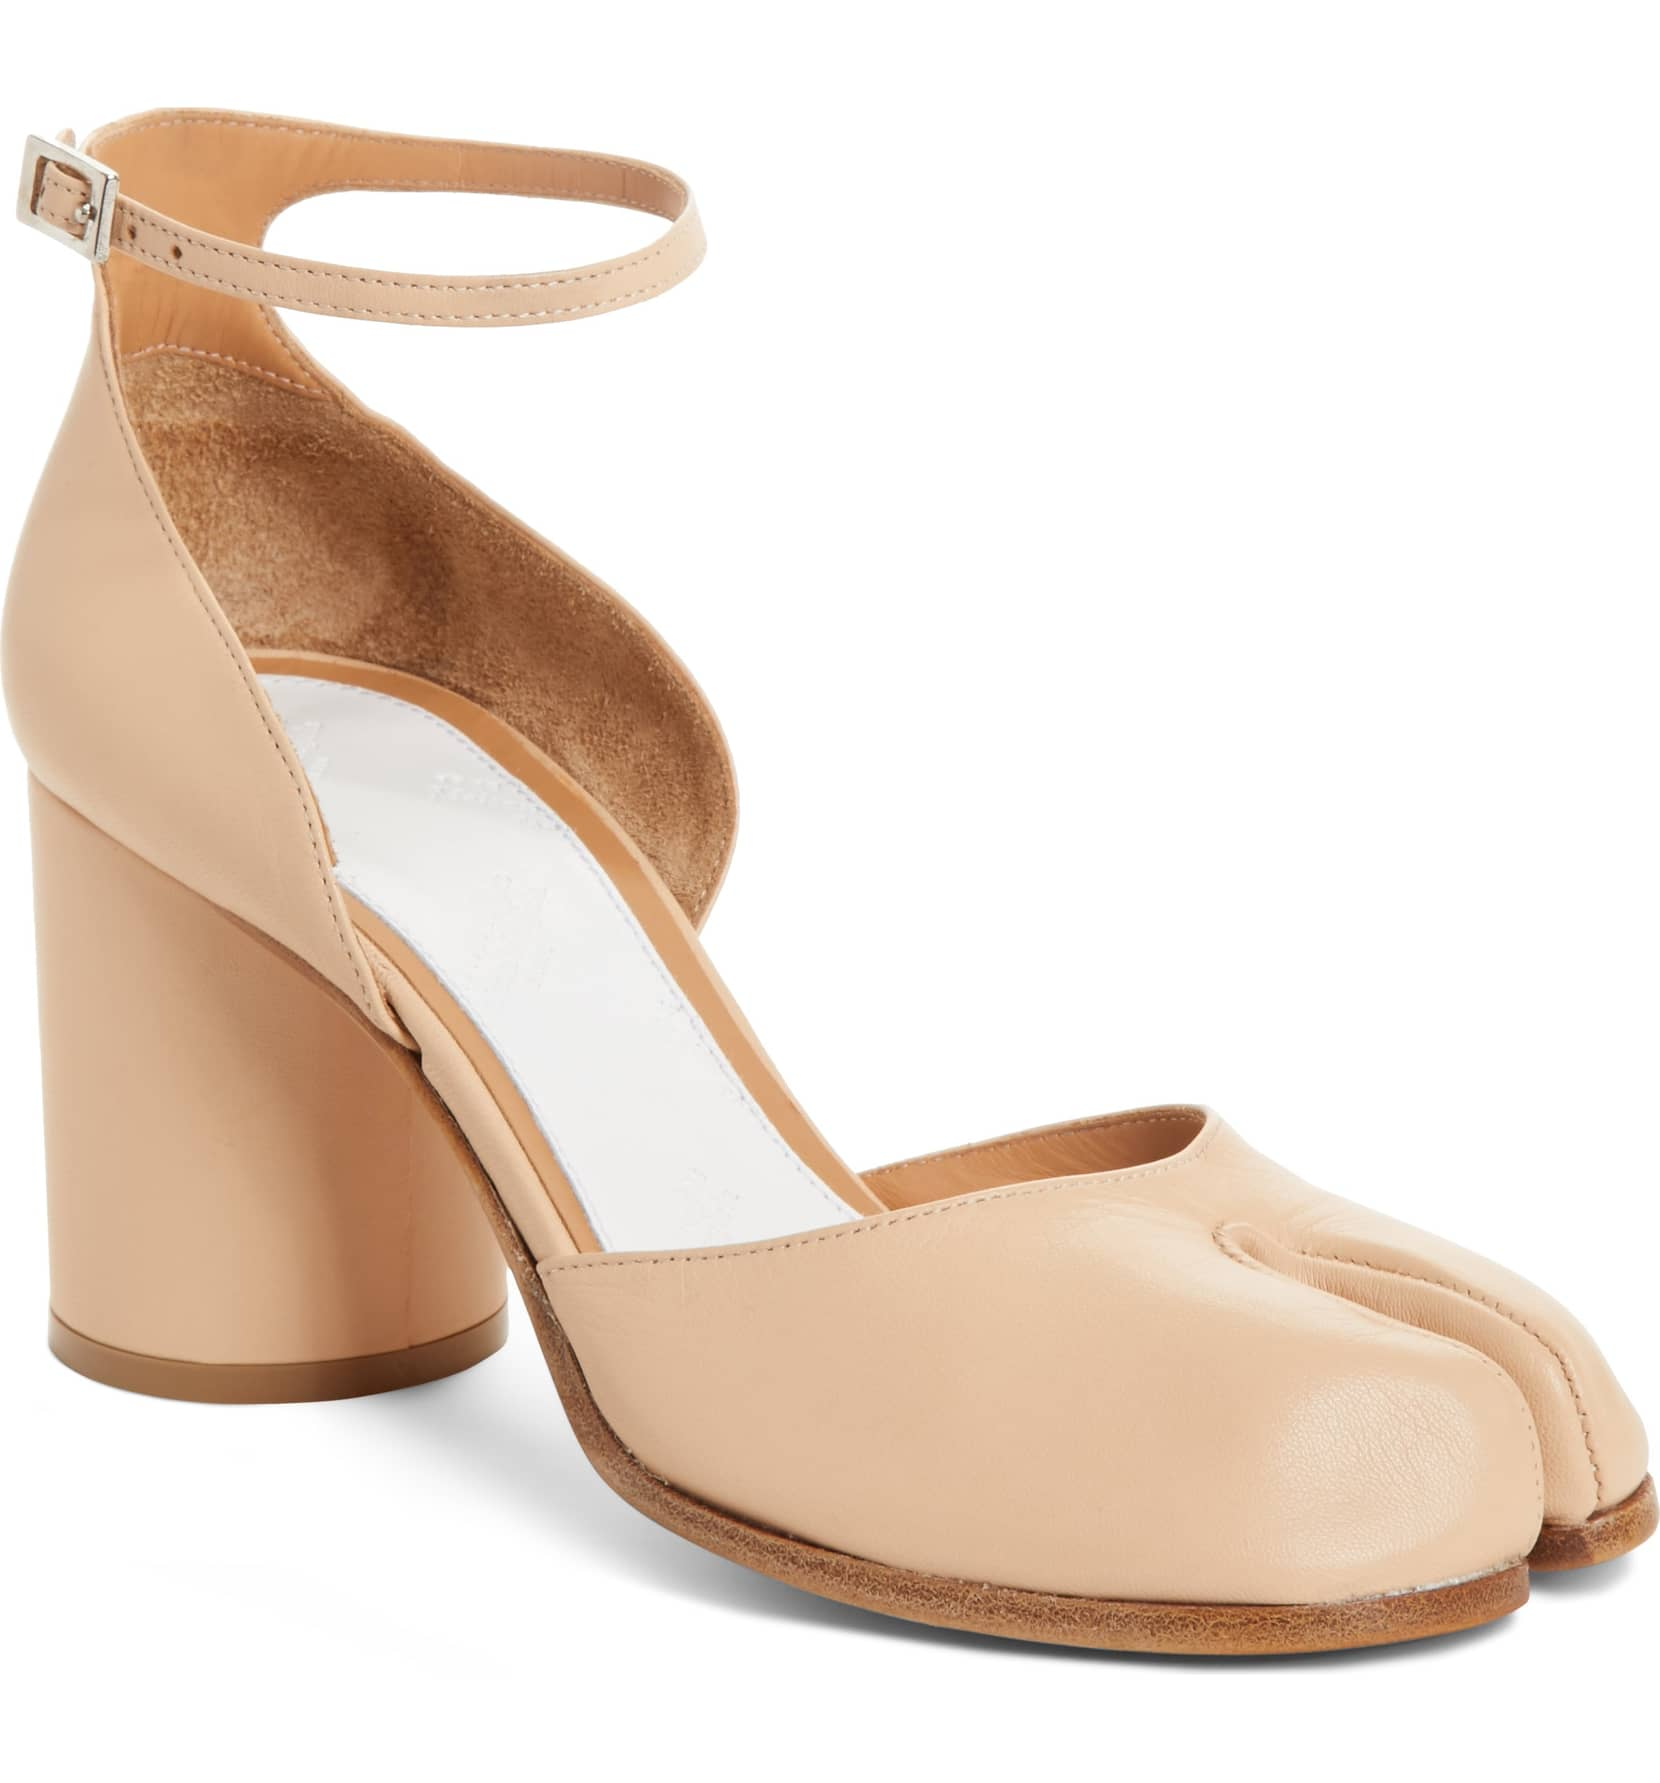 camel-toe-shoes-nordstrom.jpg